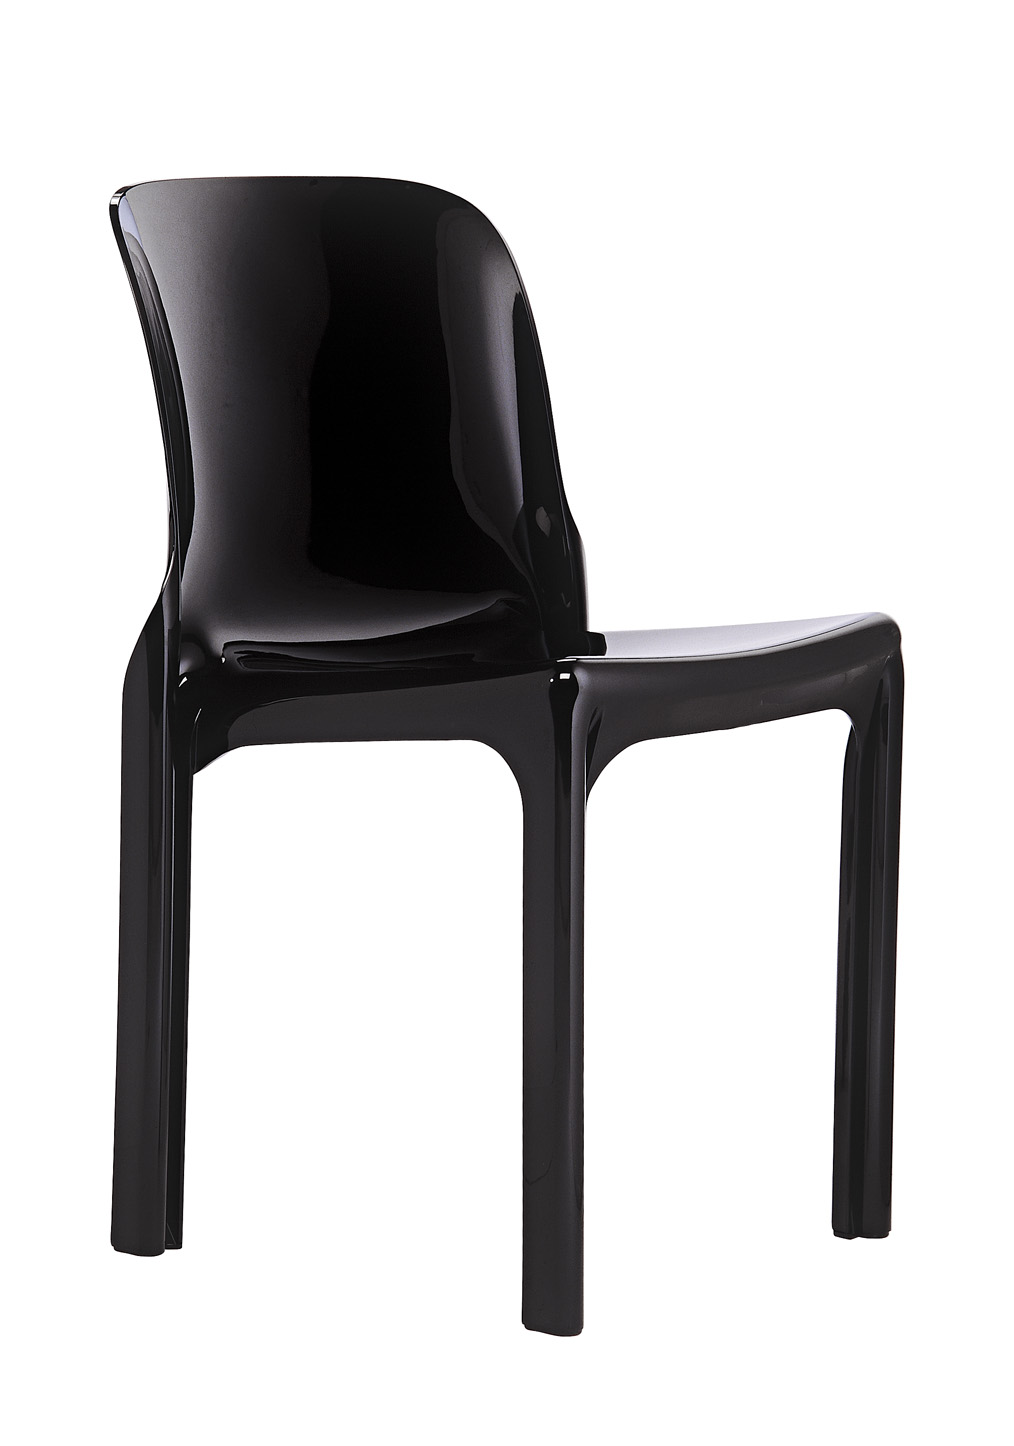 panton chair vitra verner panton klat. Black Bedroom Furniture Sets. Home Design Ideas